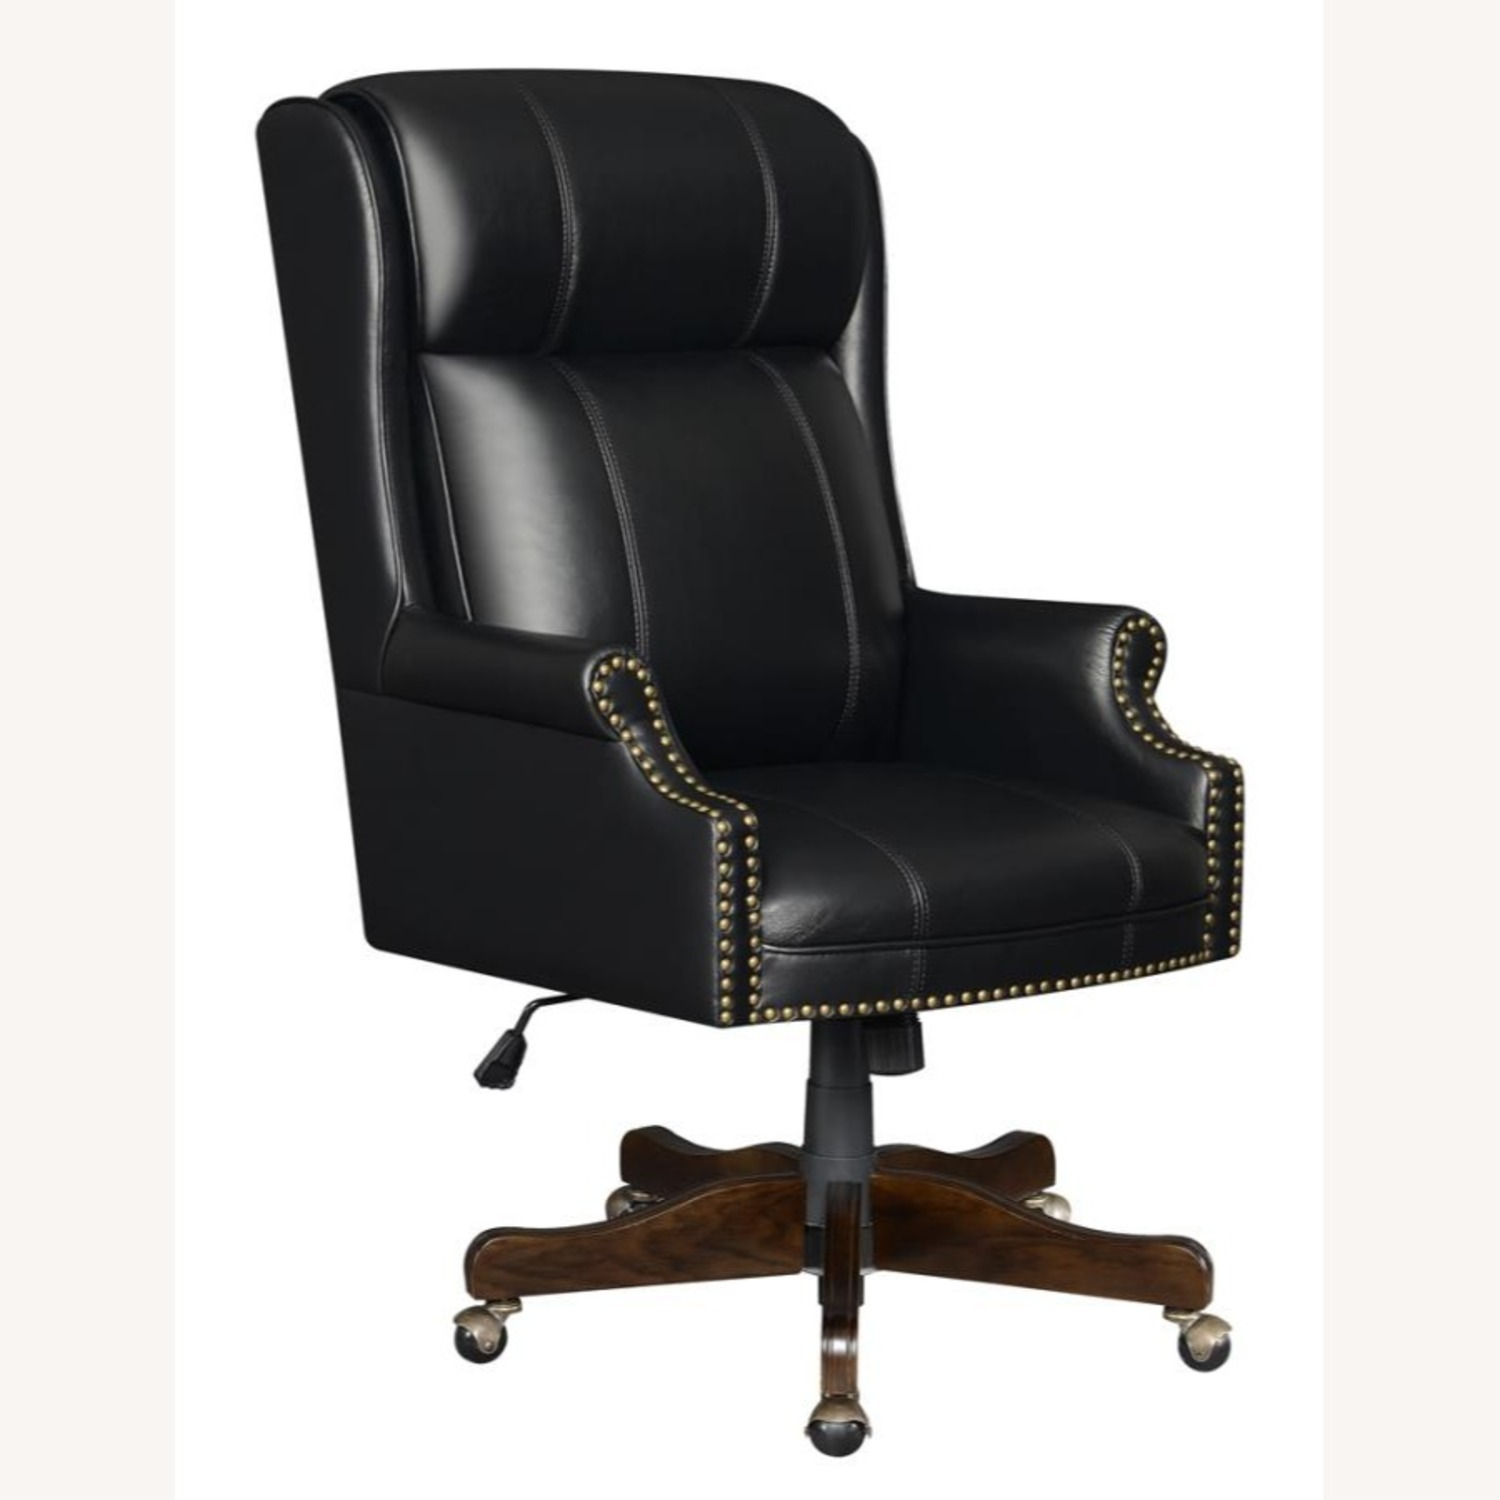 Office Chair Upholstered In Black Leatherette - image-0